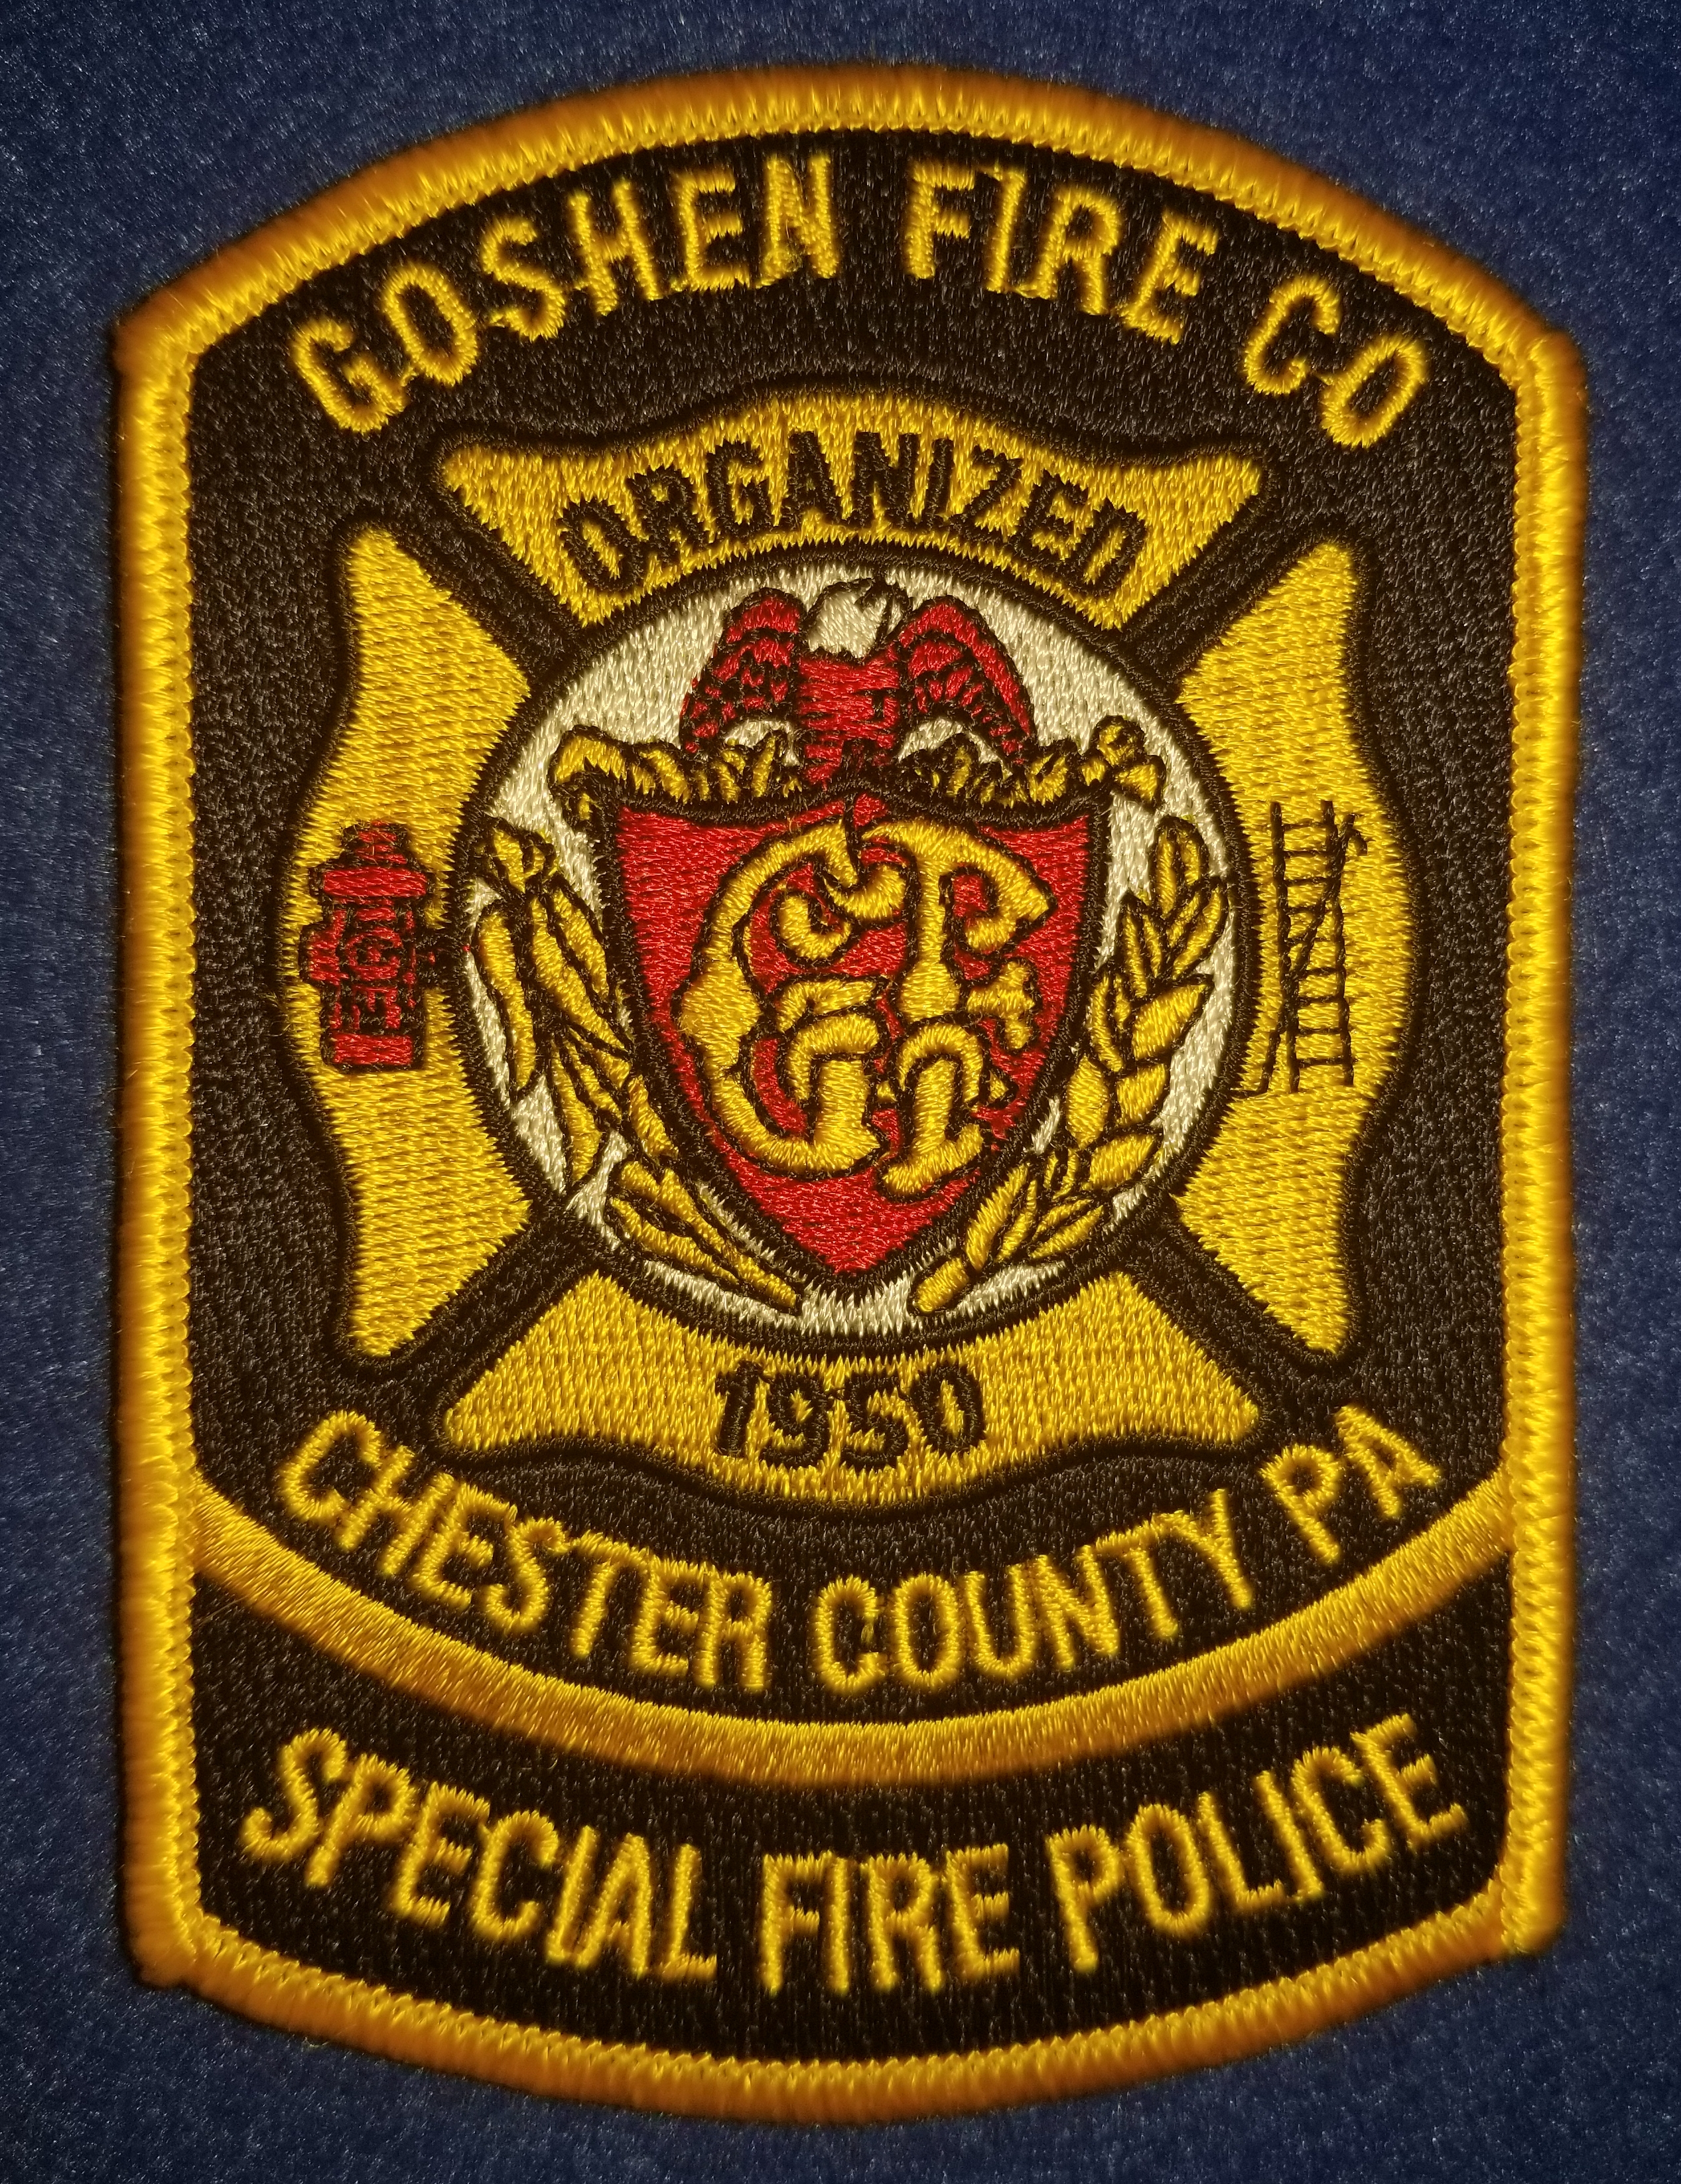 Goshen Fire Co Fire Police Chester Count